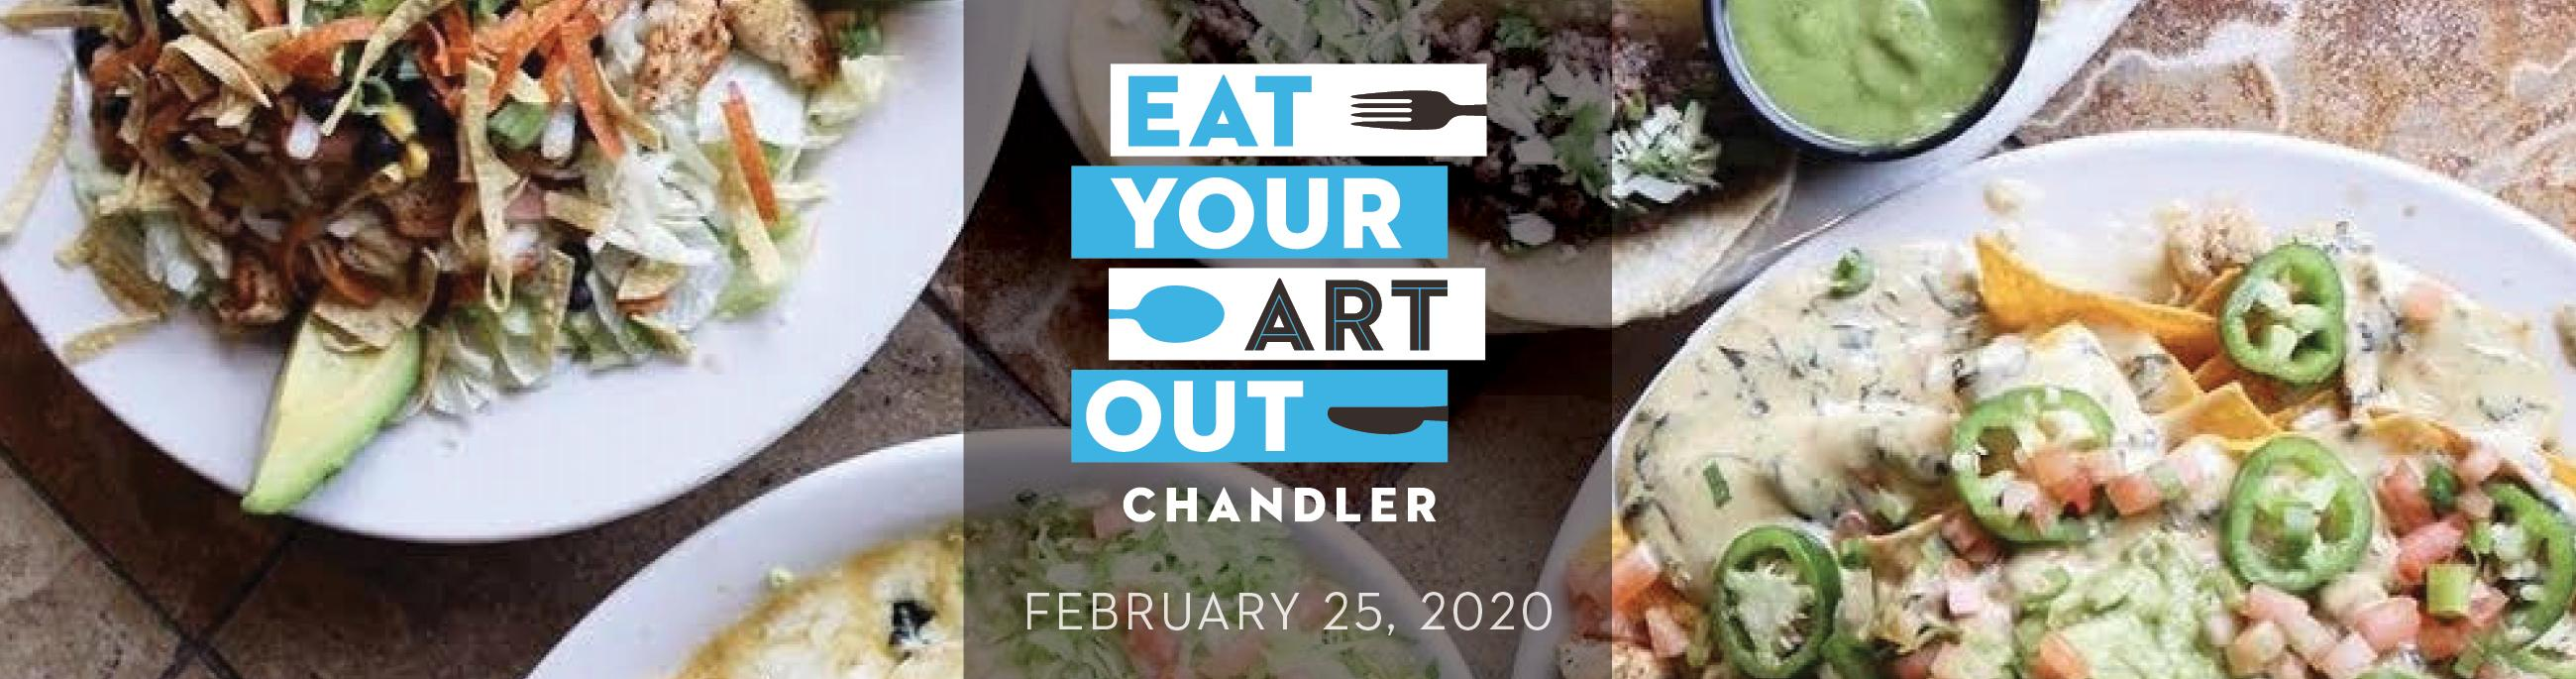 Eat Your Art Out Chandler on February 25